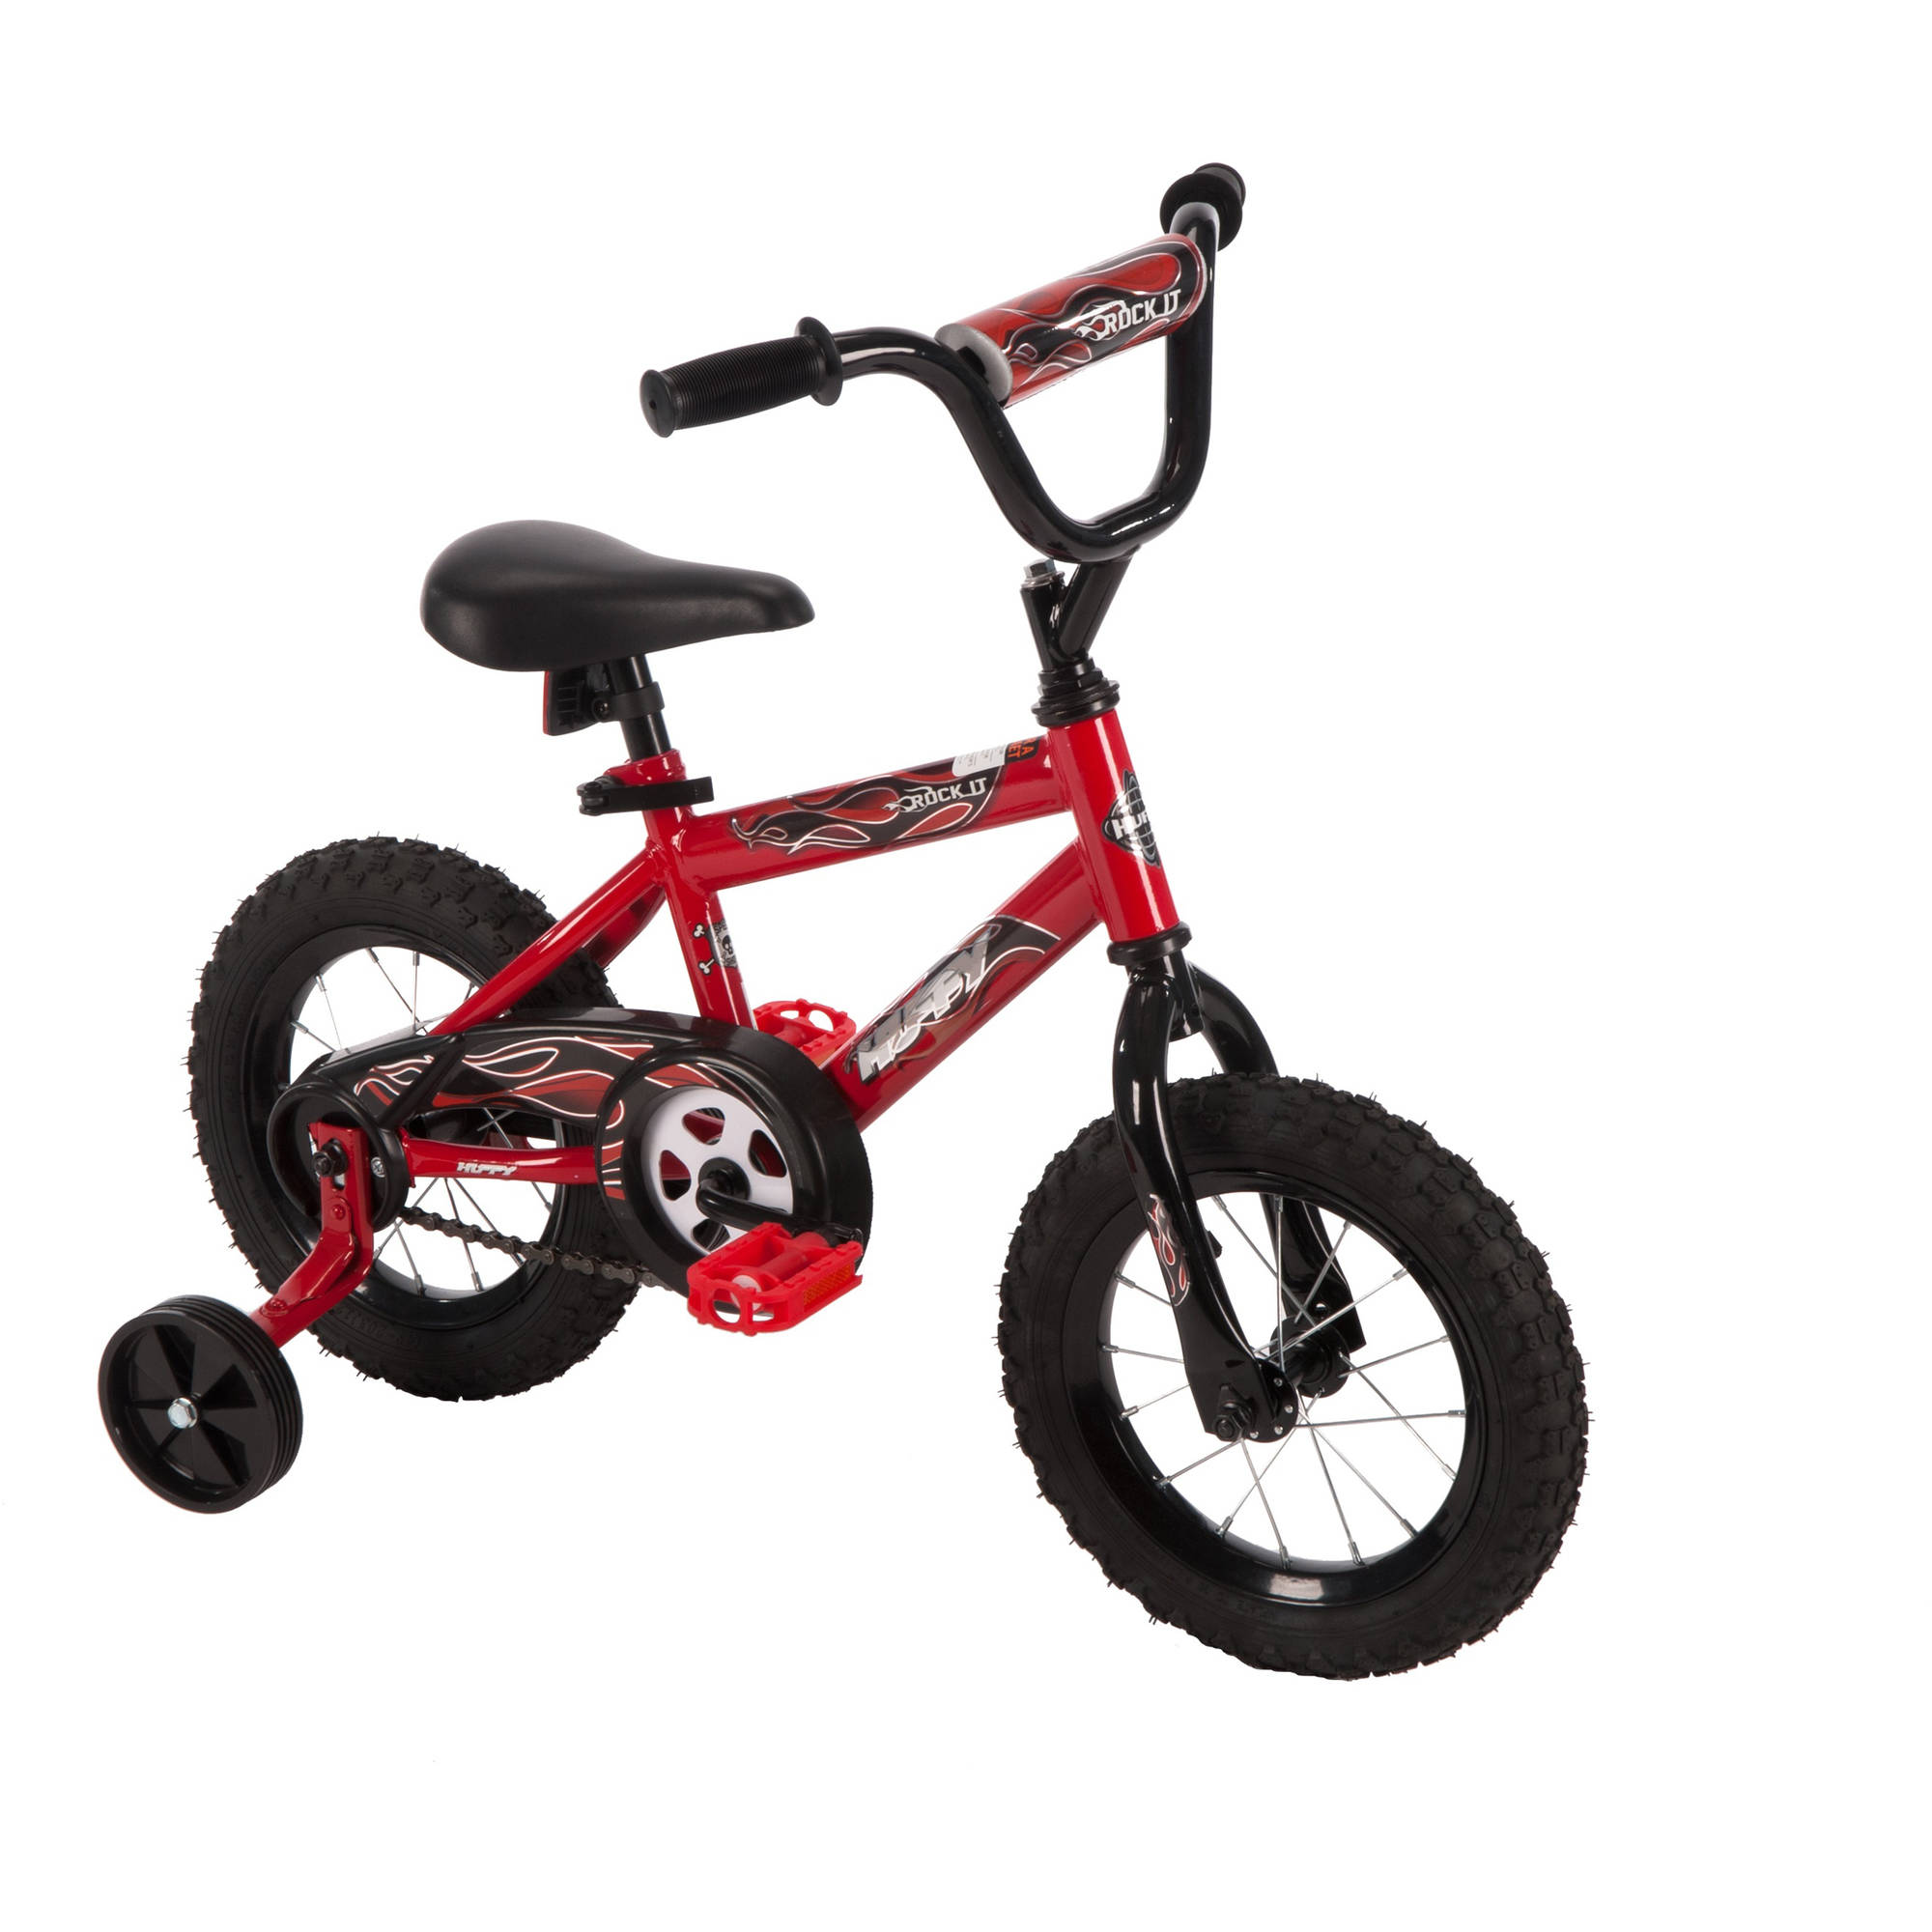 Super Mario Bicycle For Kids